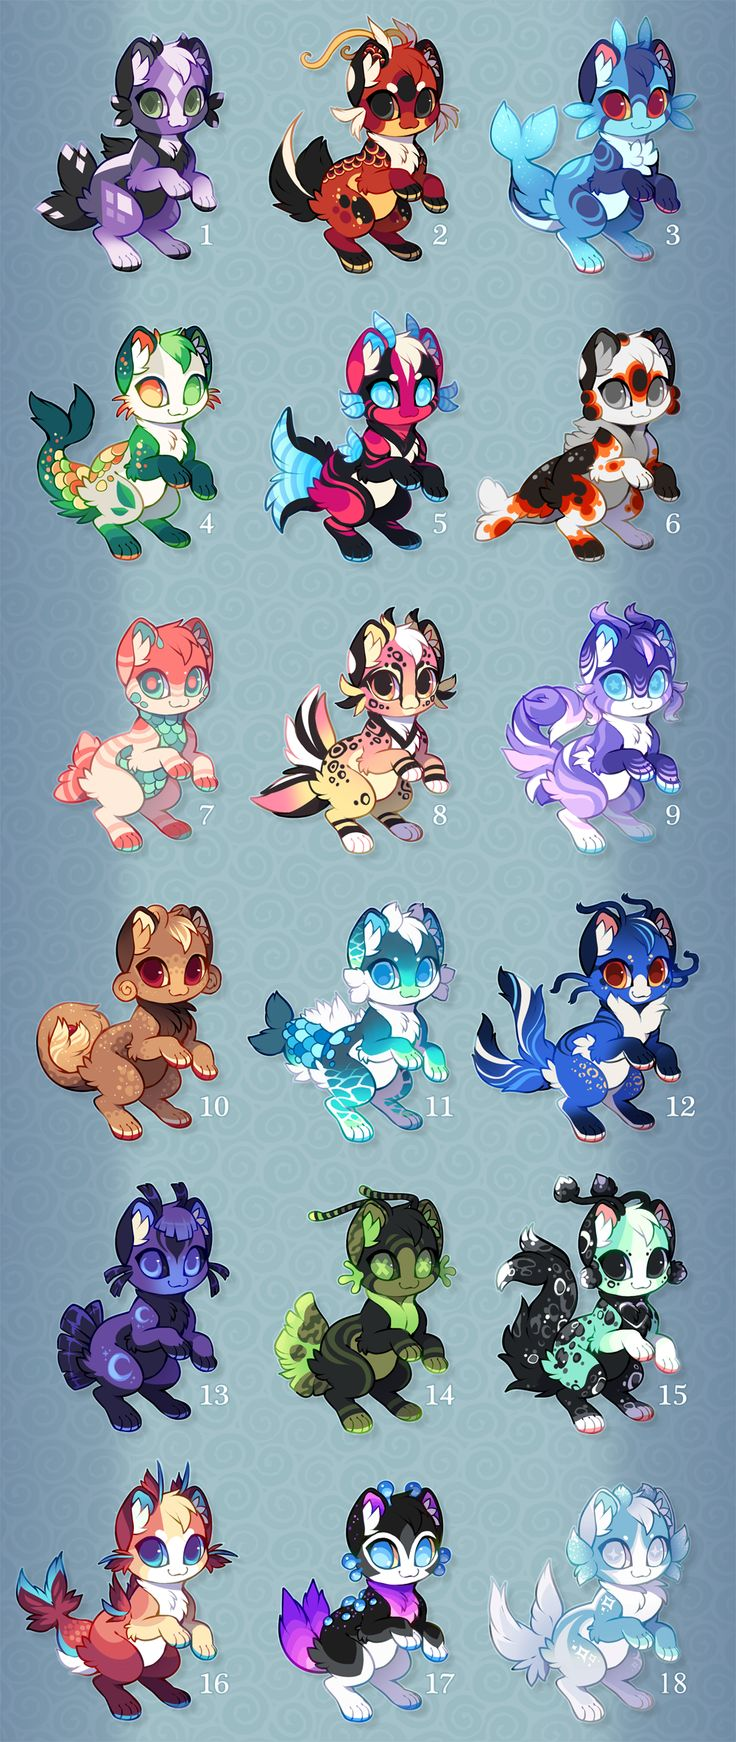 11, 13, and 15 are mine, 4, 8, and 16 were adopted by @dawn5998, 1, 2, 5, 7, 9, 14, and 17 were adopted by @zhilynnw